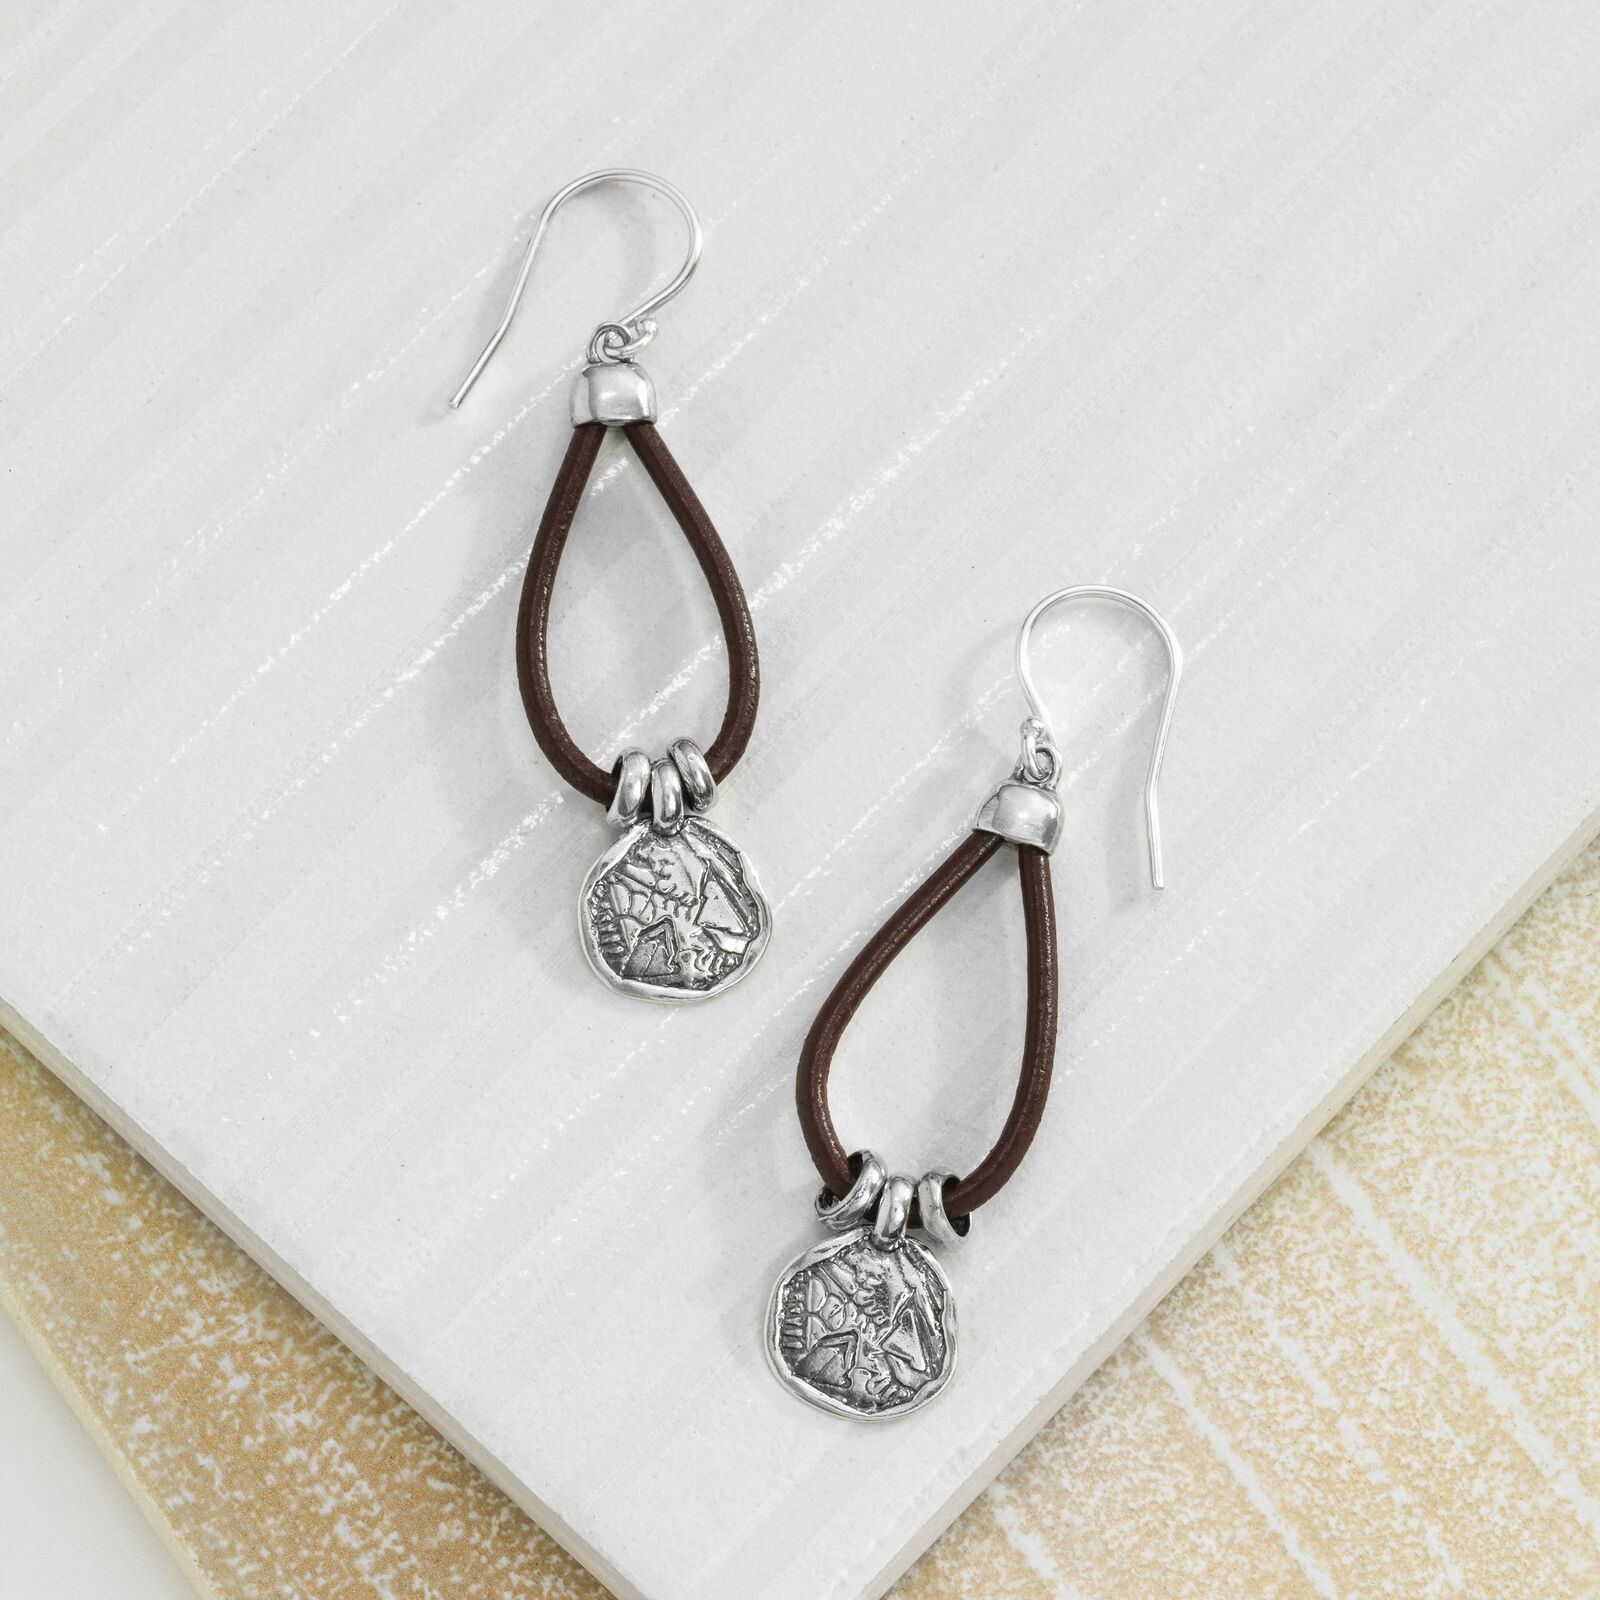 65f44574307e Silpada W2179 Sterling Silver and Leather Drop Earrings for sale ...